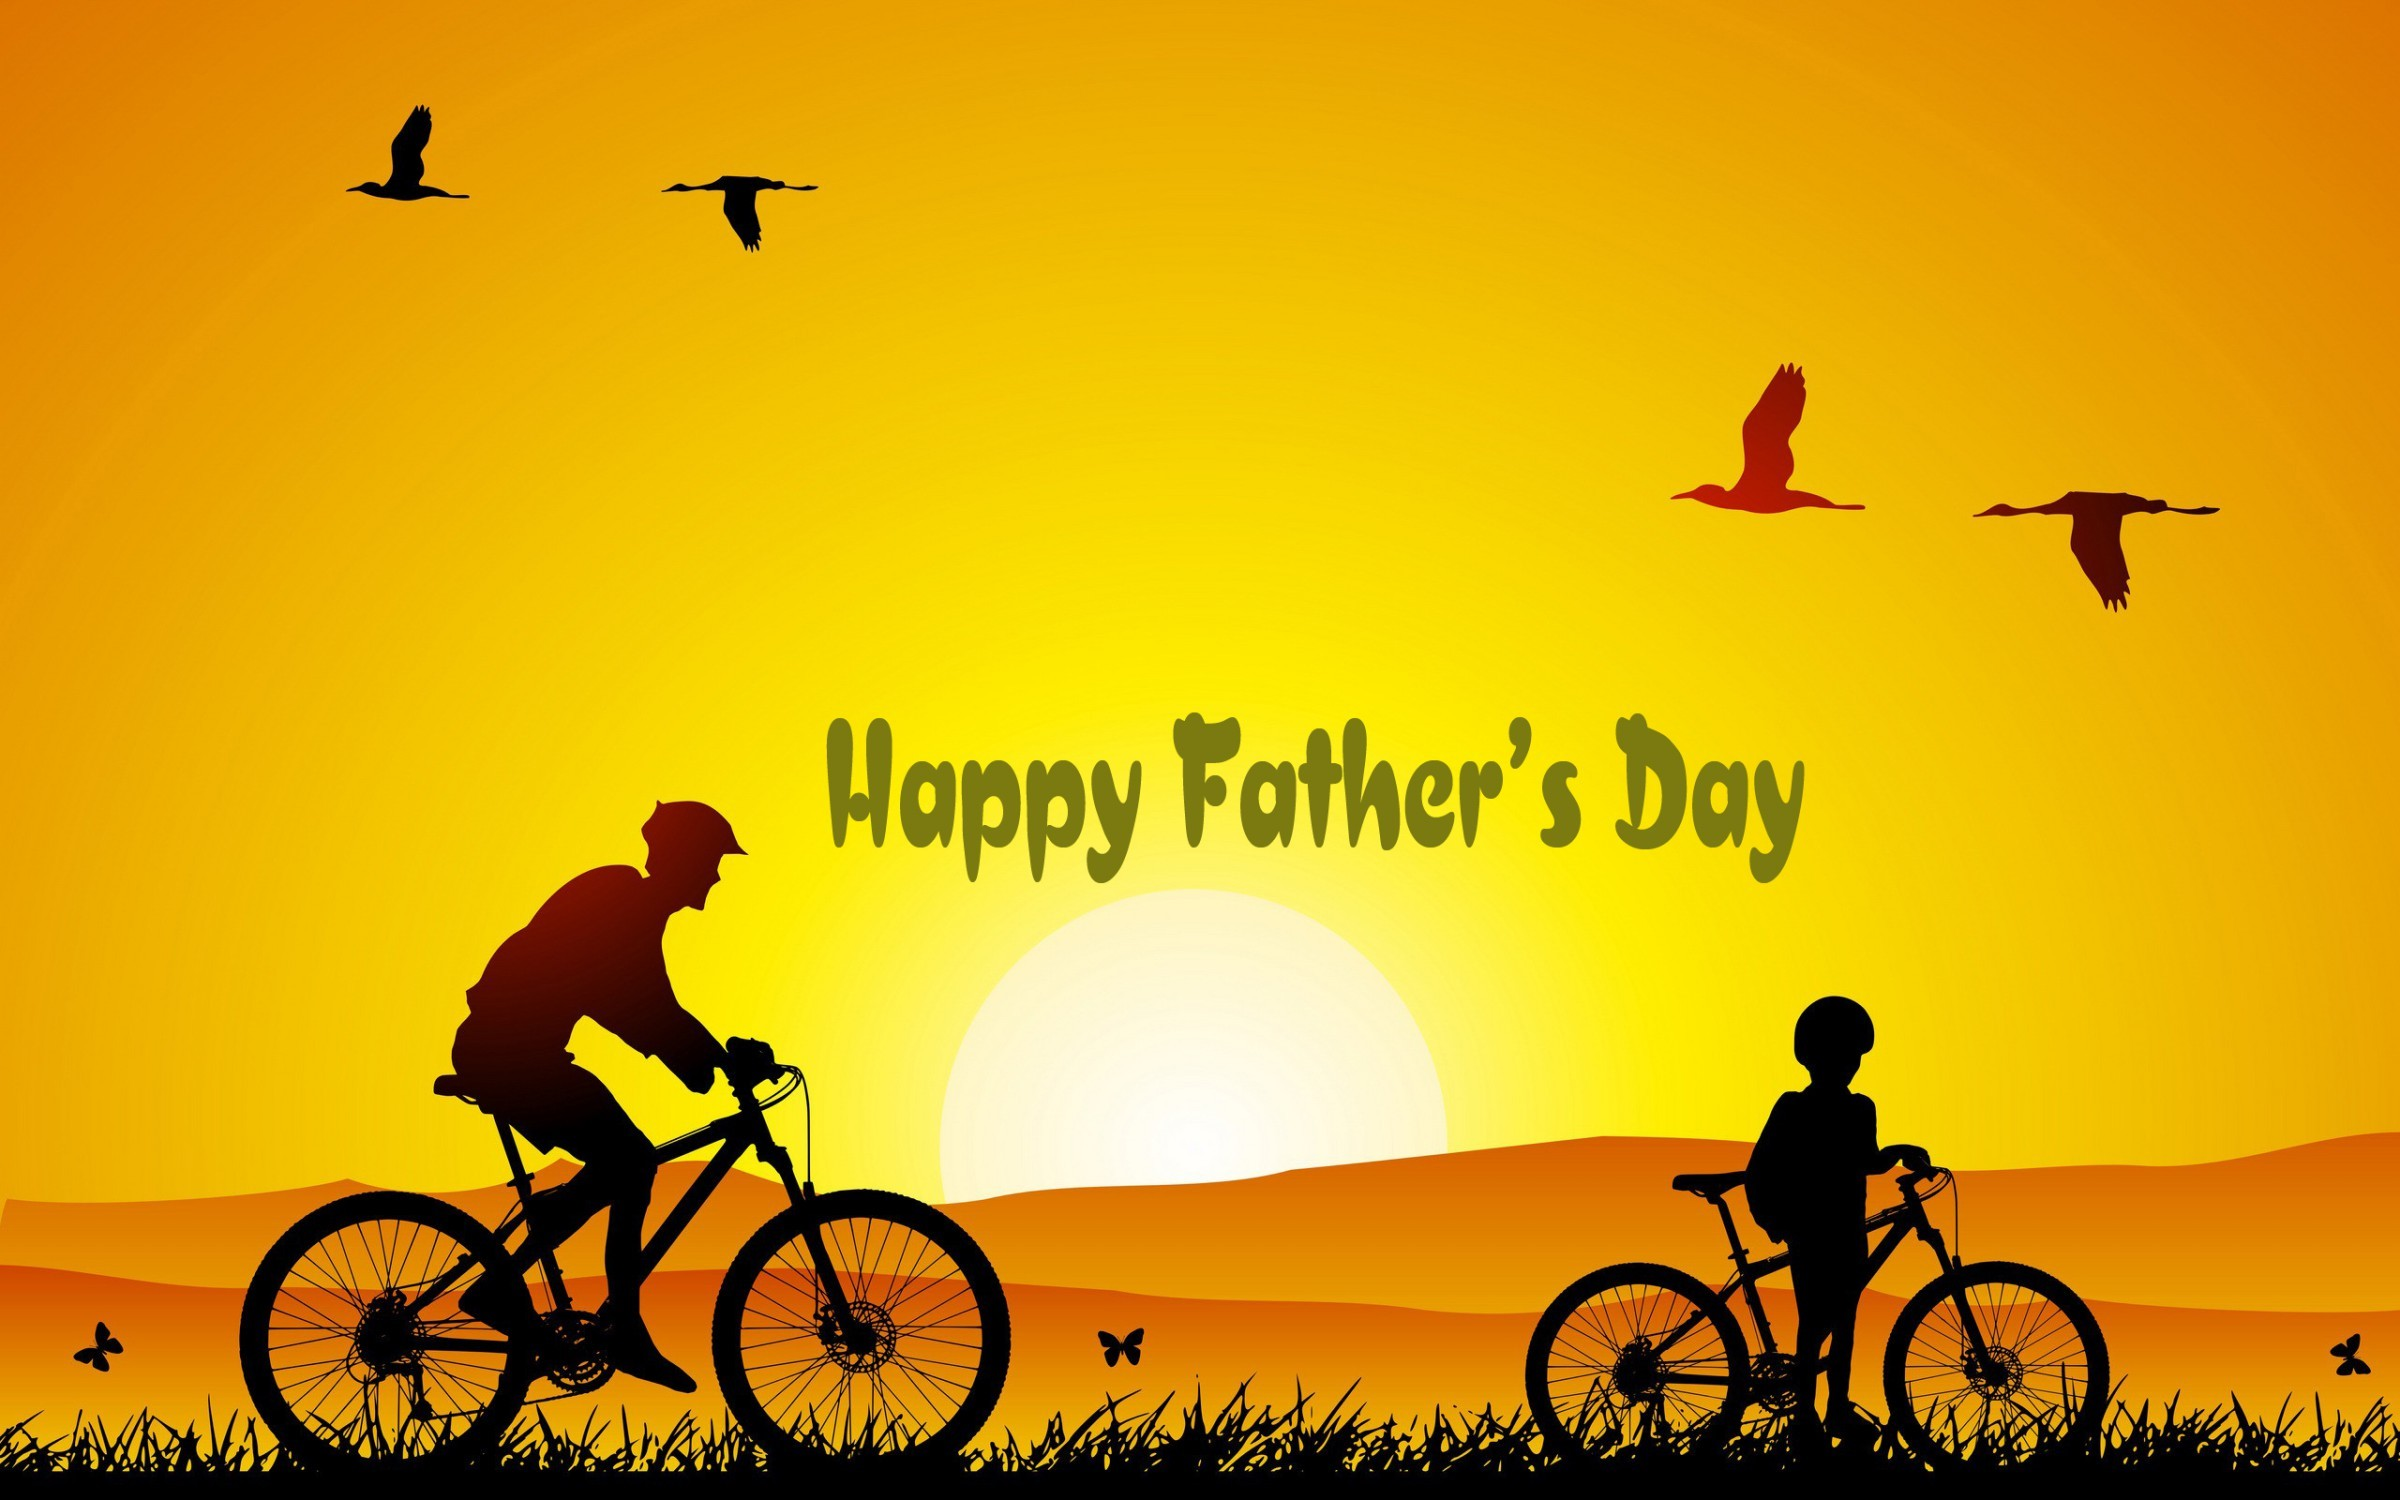 2400x1500 Happy Father's Day HD Wallpaper For Friends